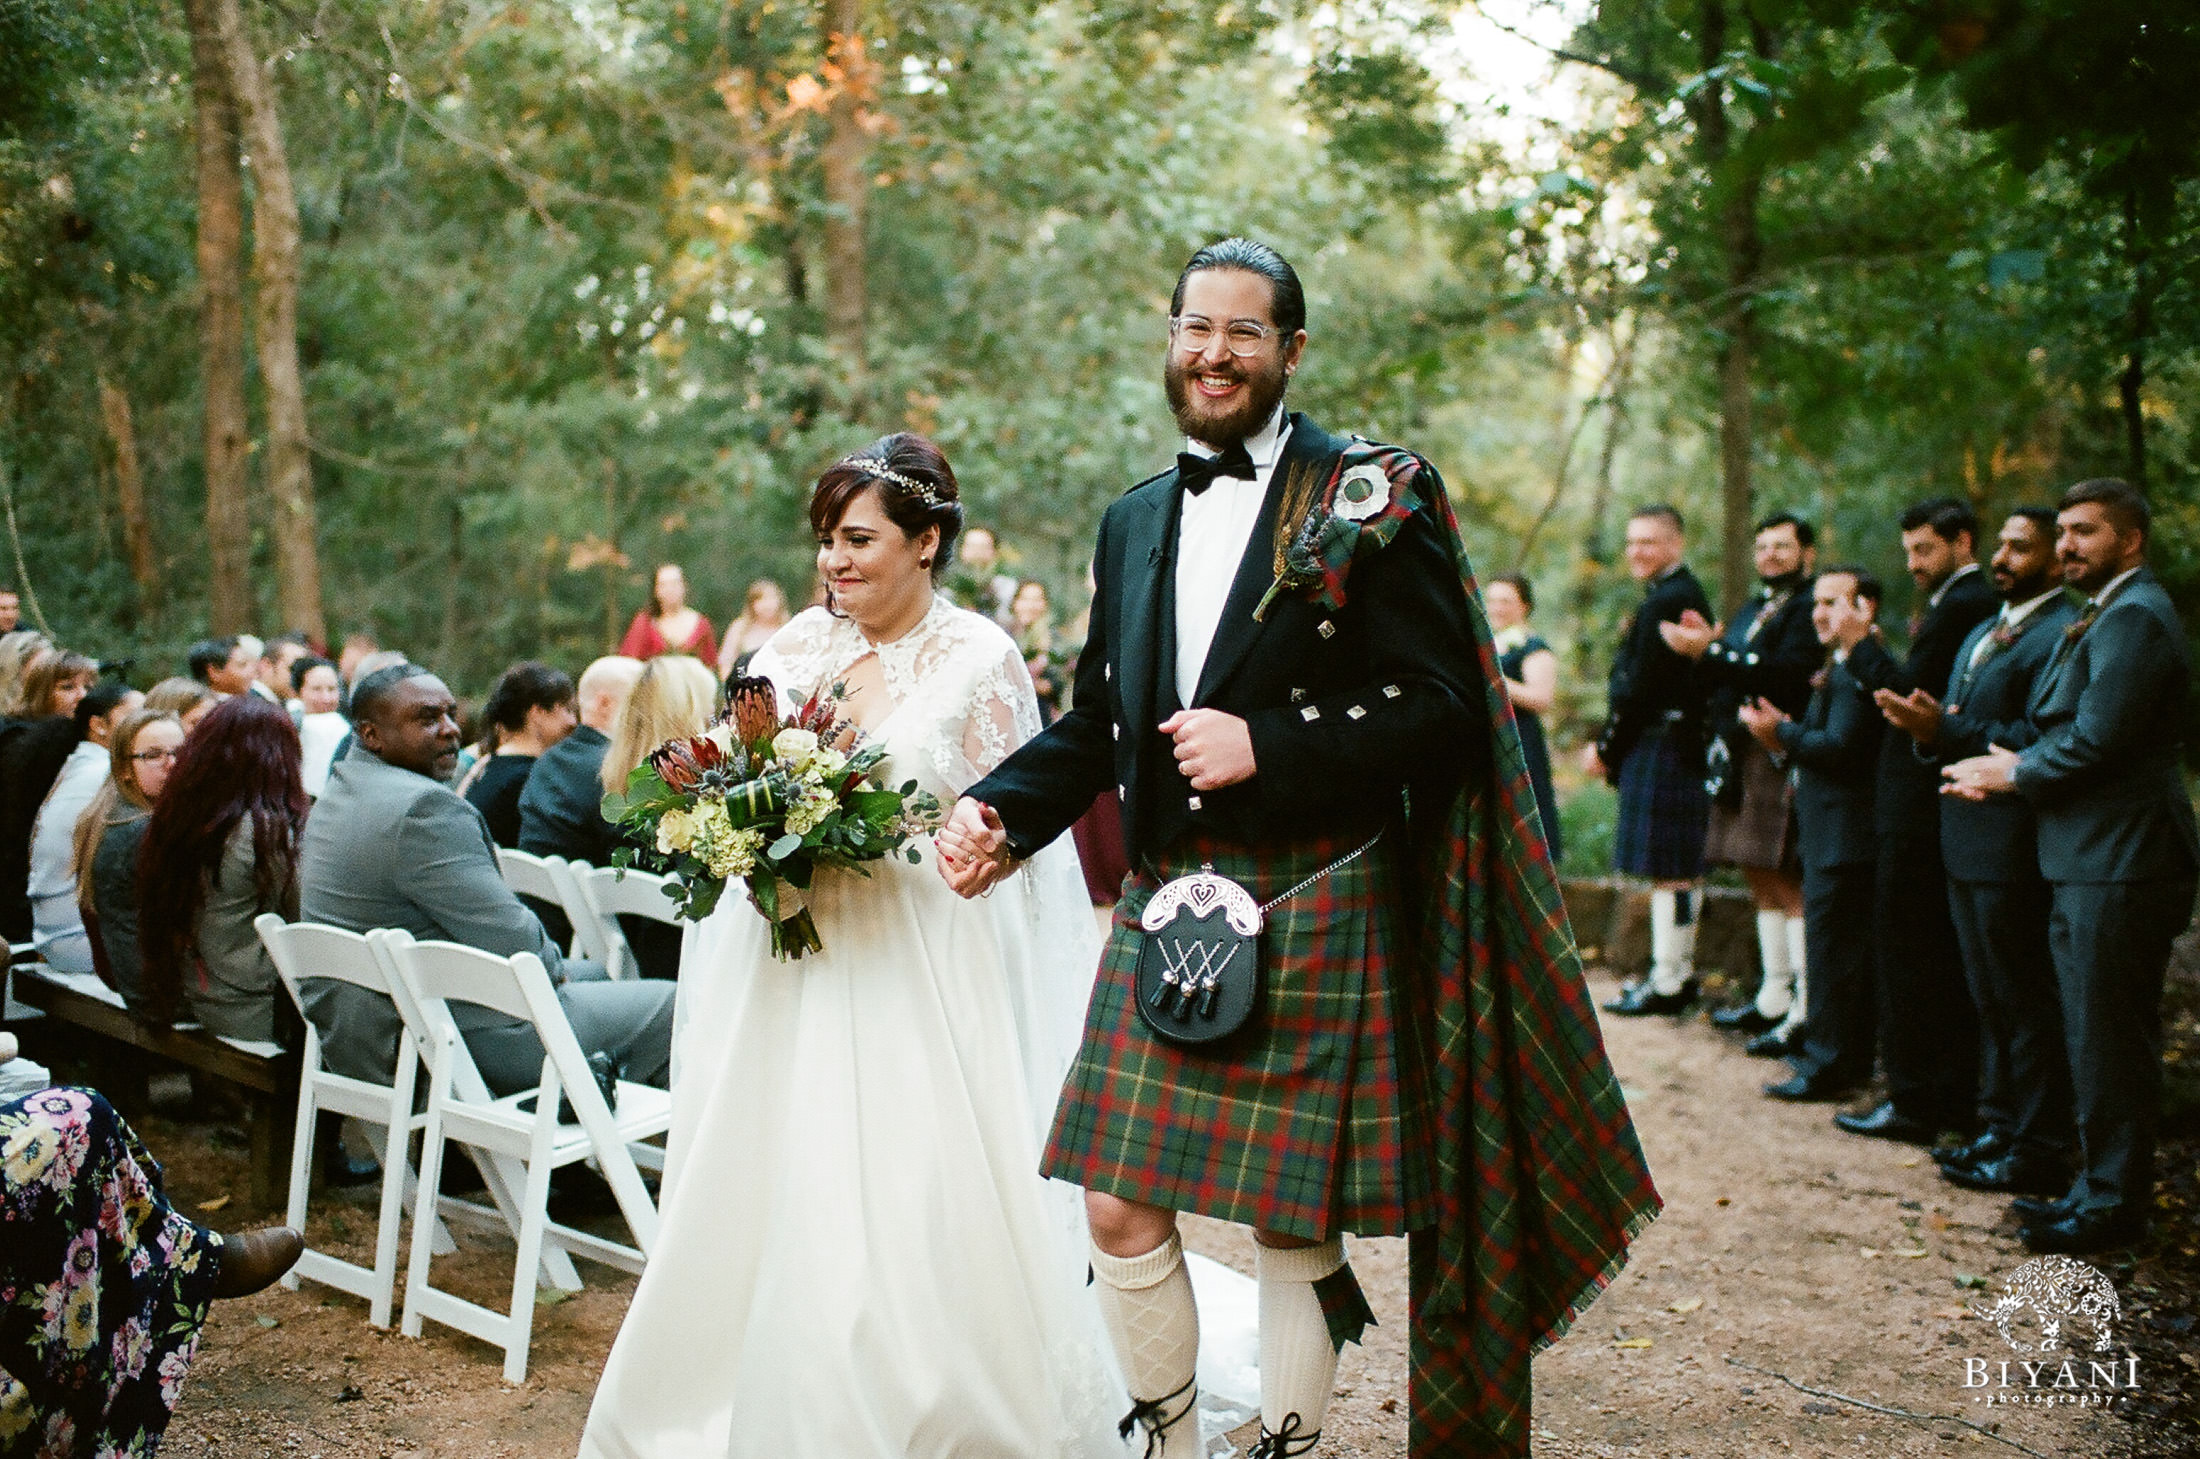 Groom in a kilt and bride in a wedding dress departing their wedding ceremony in a forest - Houston Arboretum